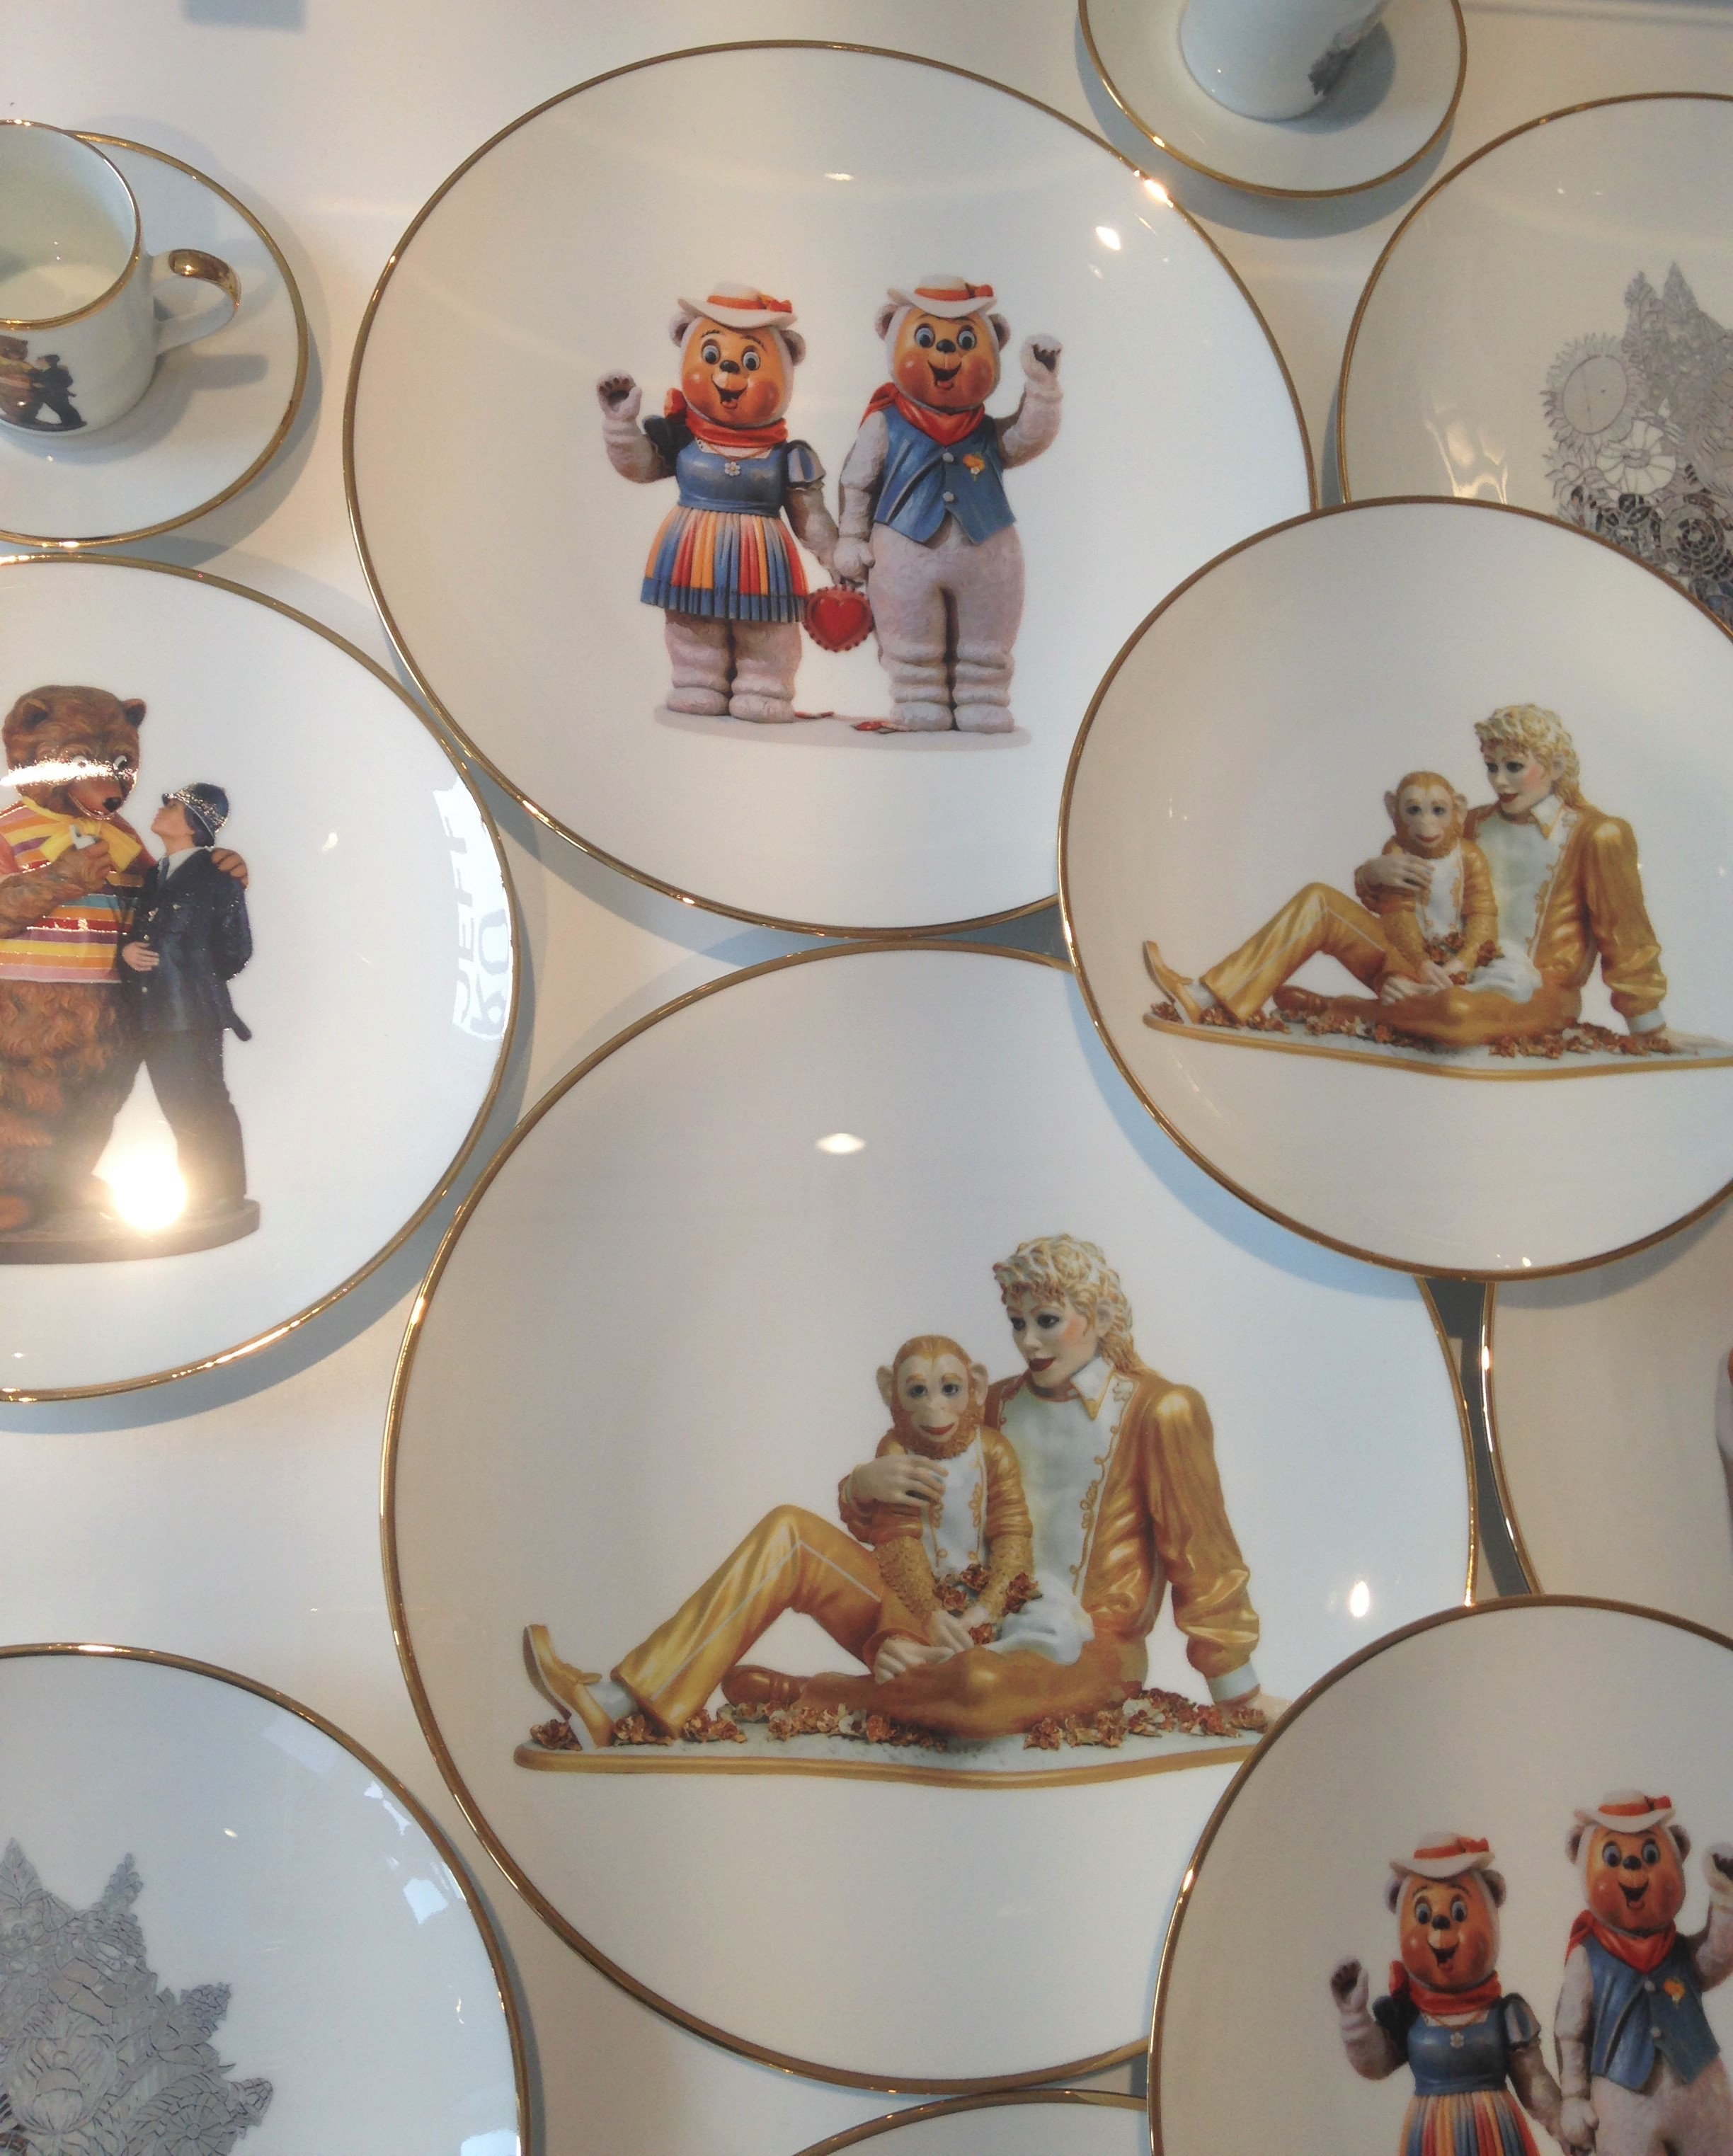 Jeff Koons plates in the Newport Street Gallery shop - kenningtonrunoff@gmail.com